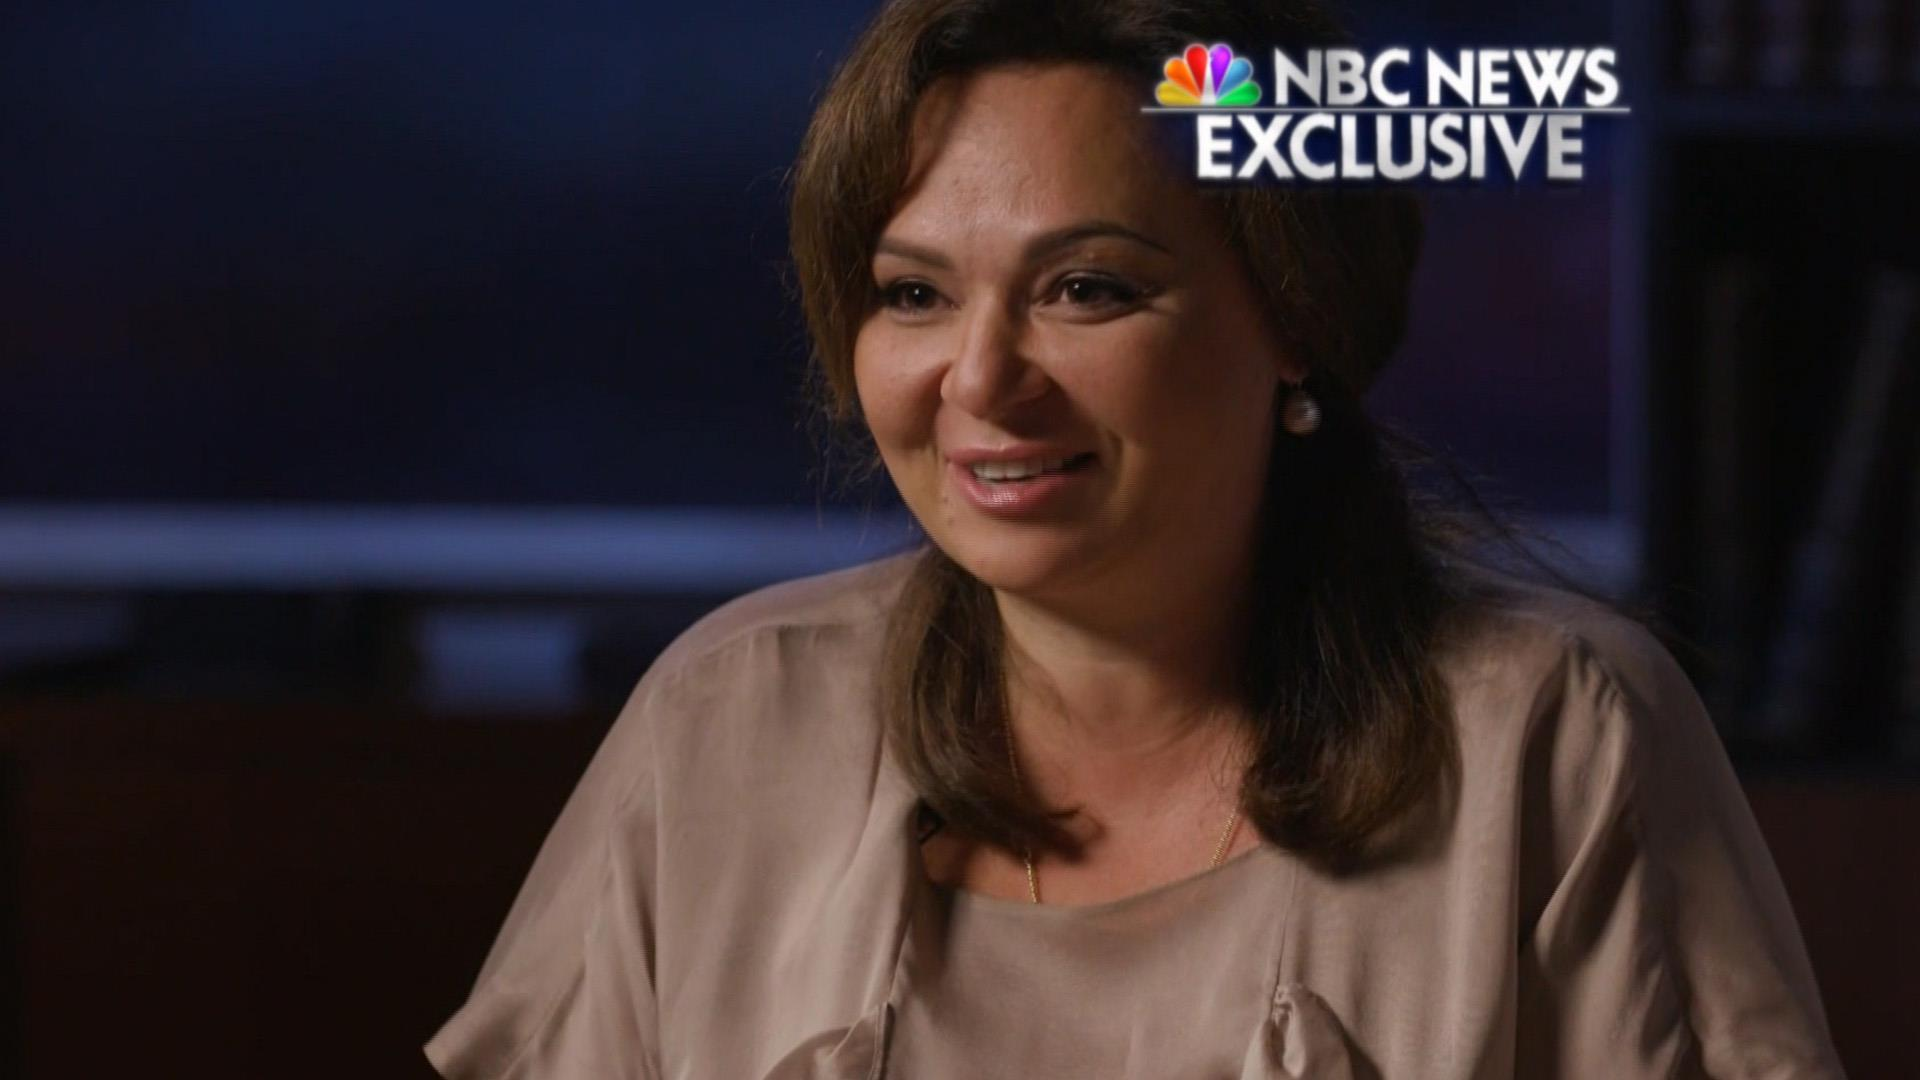 Russian Lawyer Who Met With Trump Jr.: I Didn't Have Clinton Info They Wanted